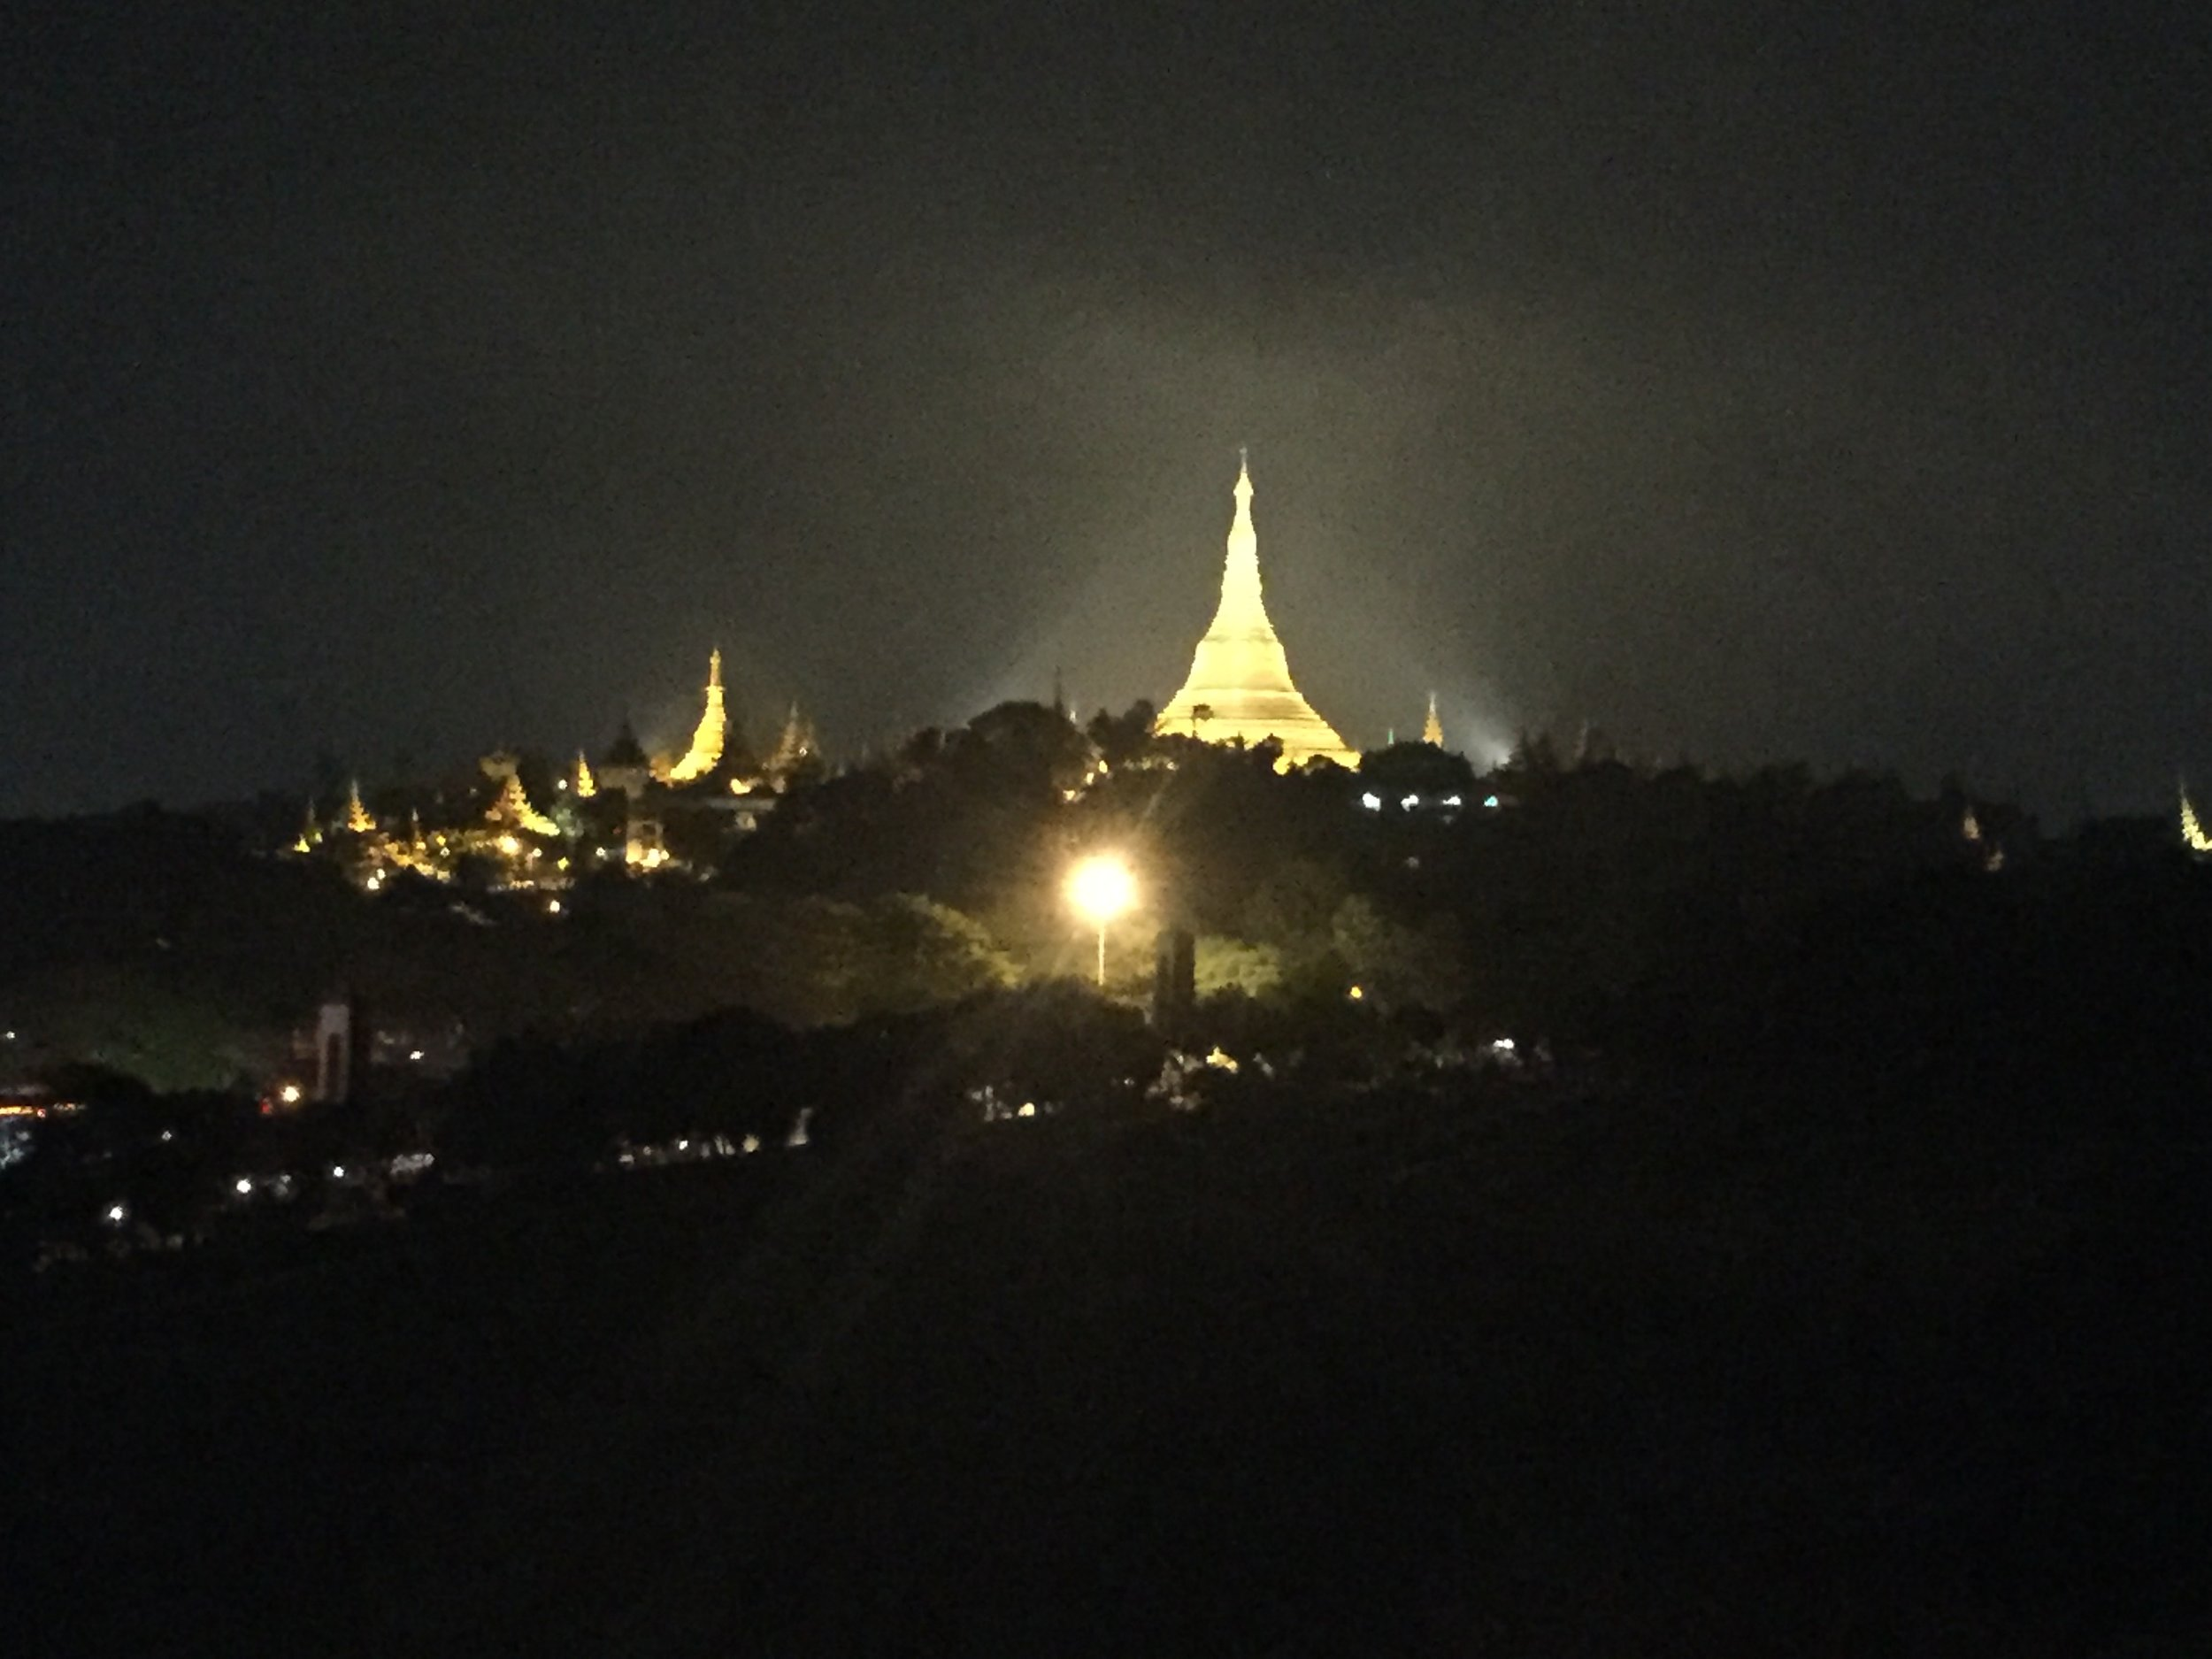 Shwedagon seen from a kilometer away, changing colors through sunset and night.